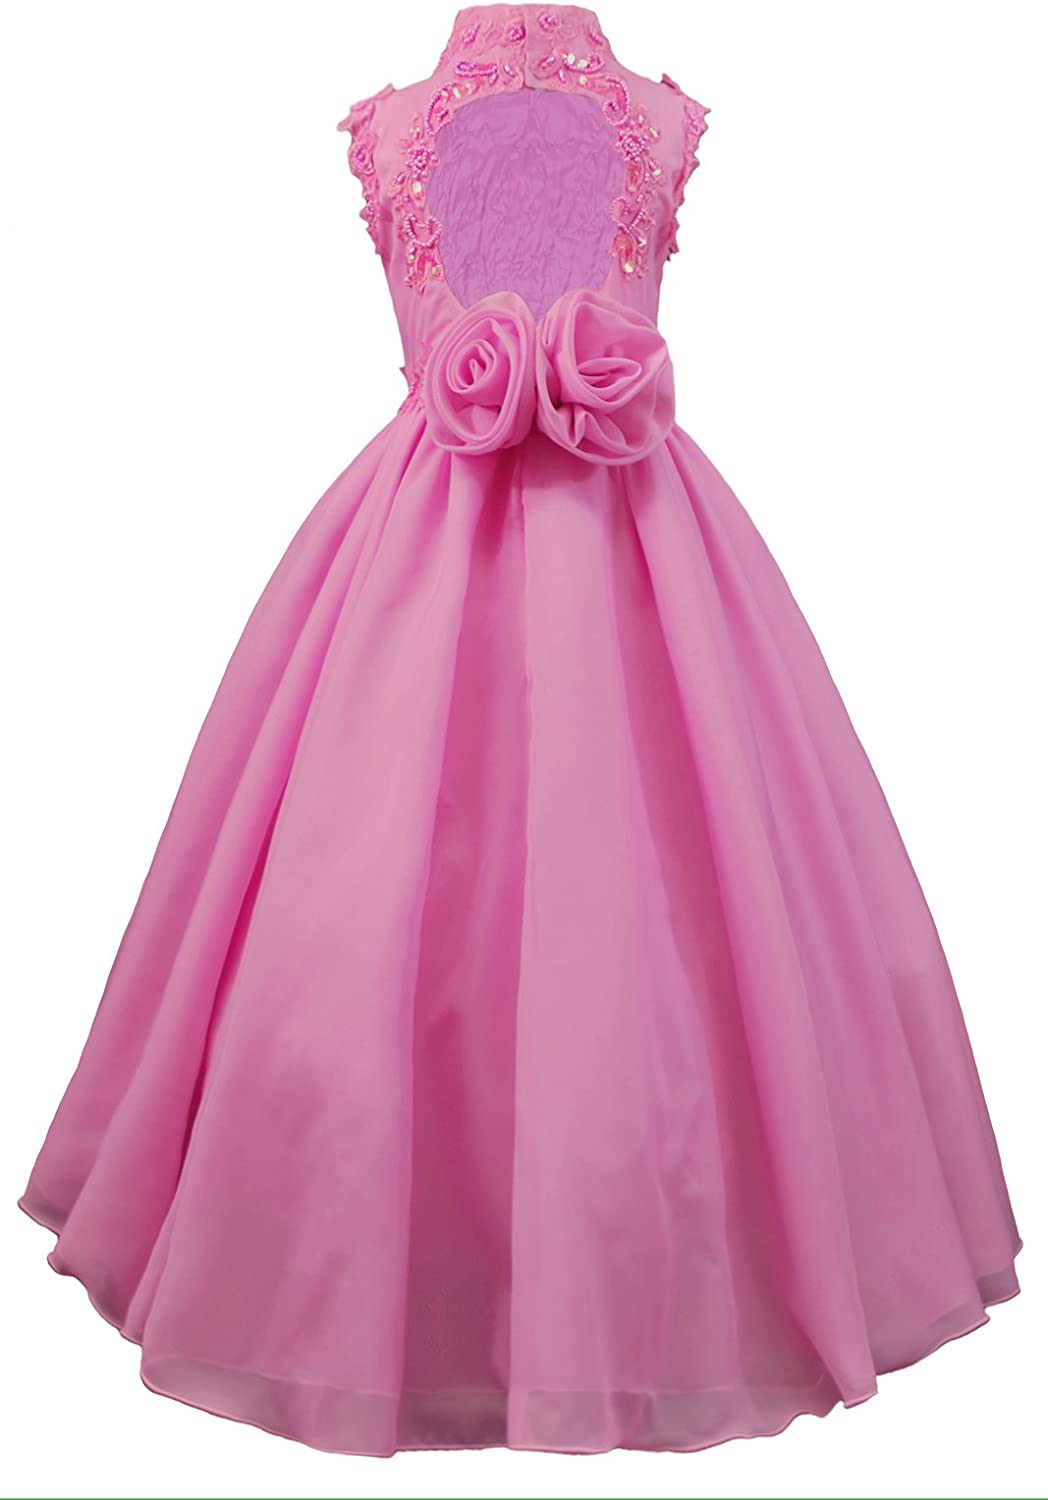 Unotux Girls Pageant Formal Fuchsia Pink Dresses Sequins Beads Embroidered Trim